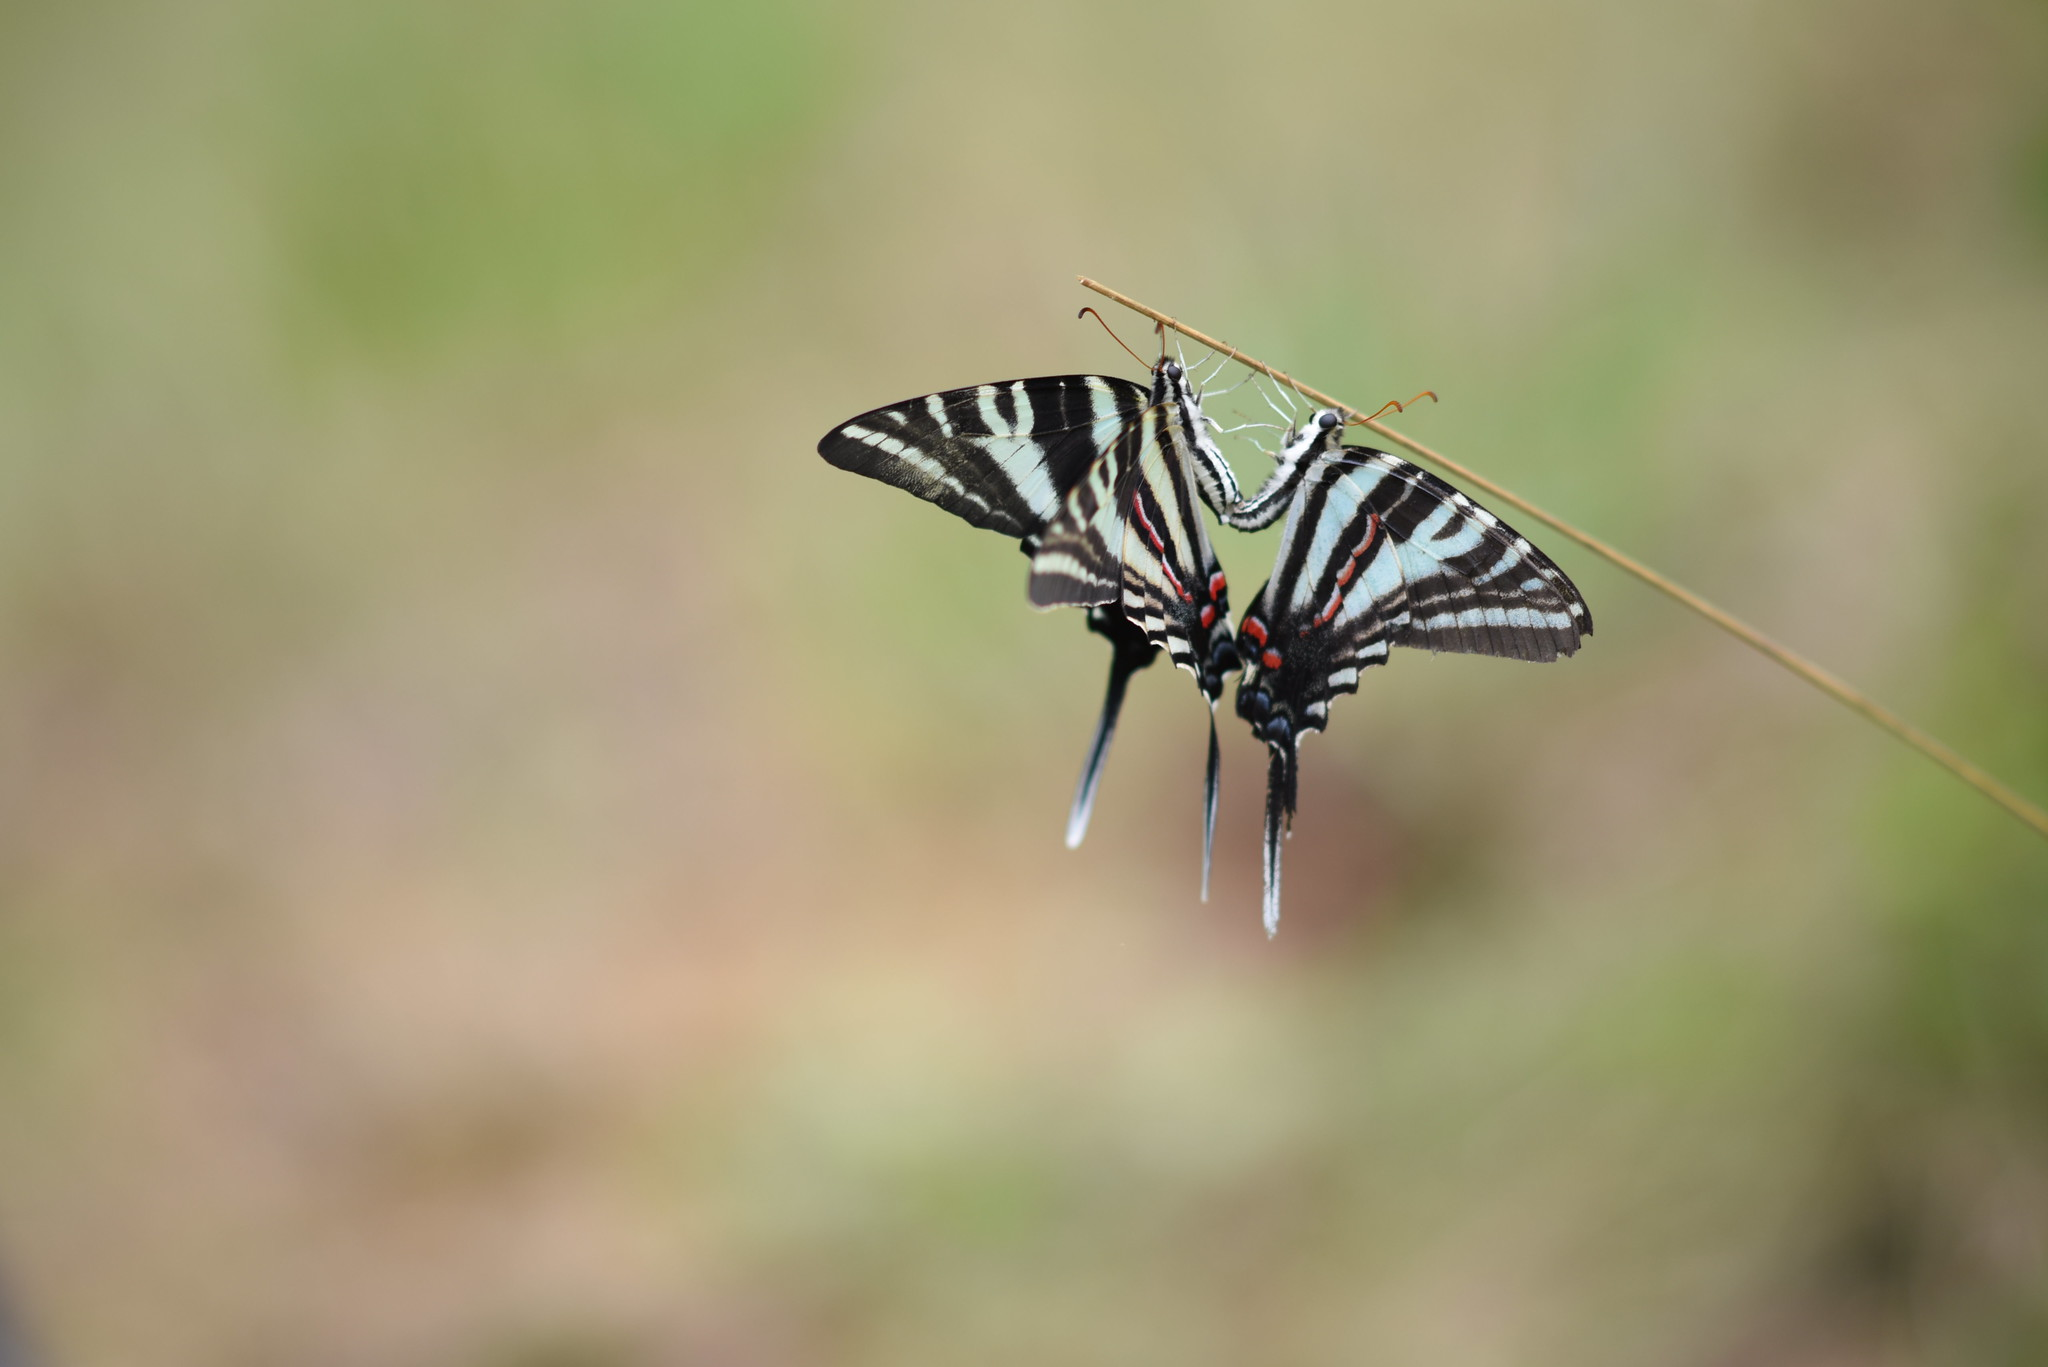 Two zebra butterflies perching on a thin tree branch